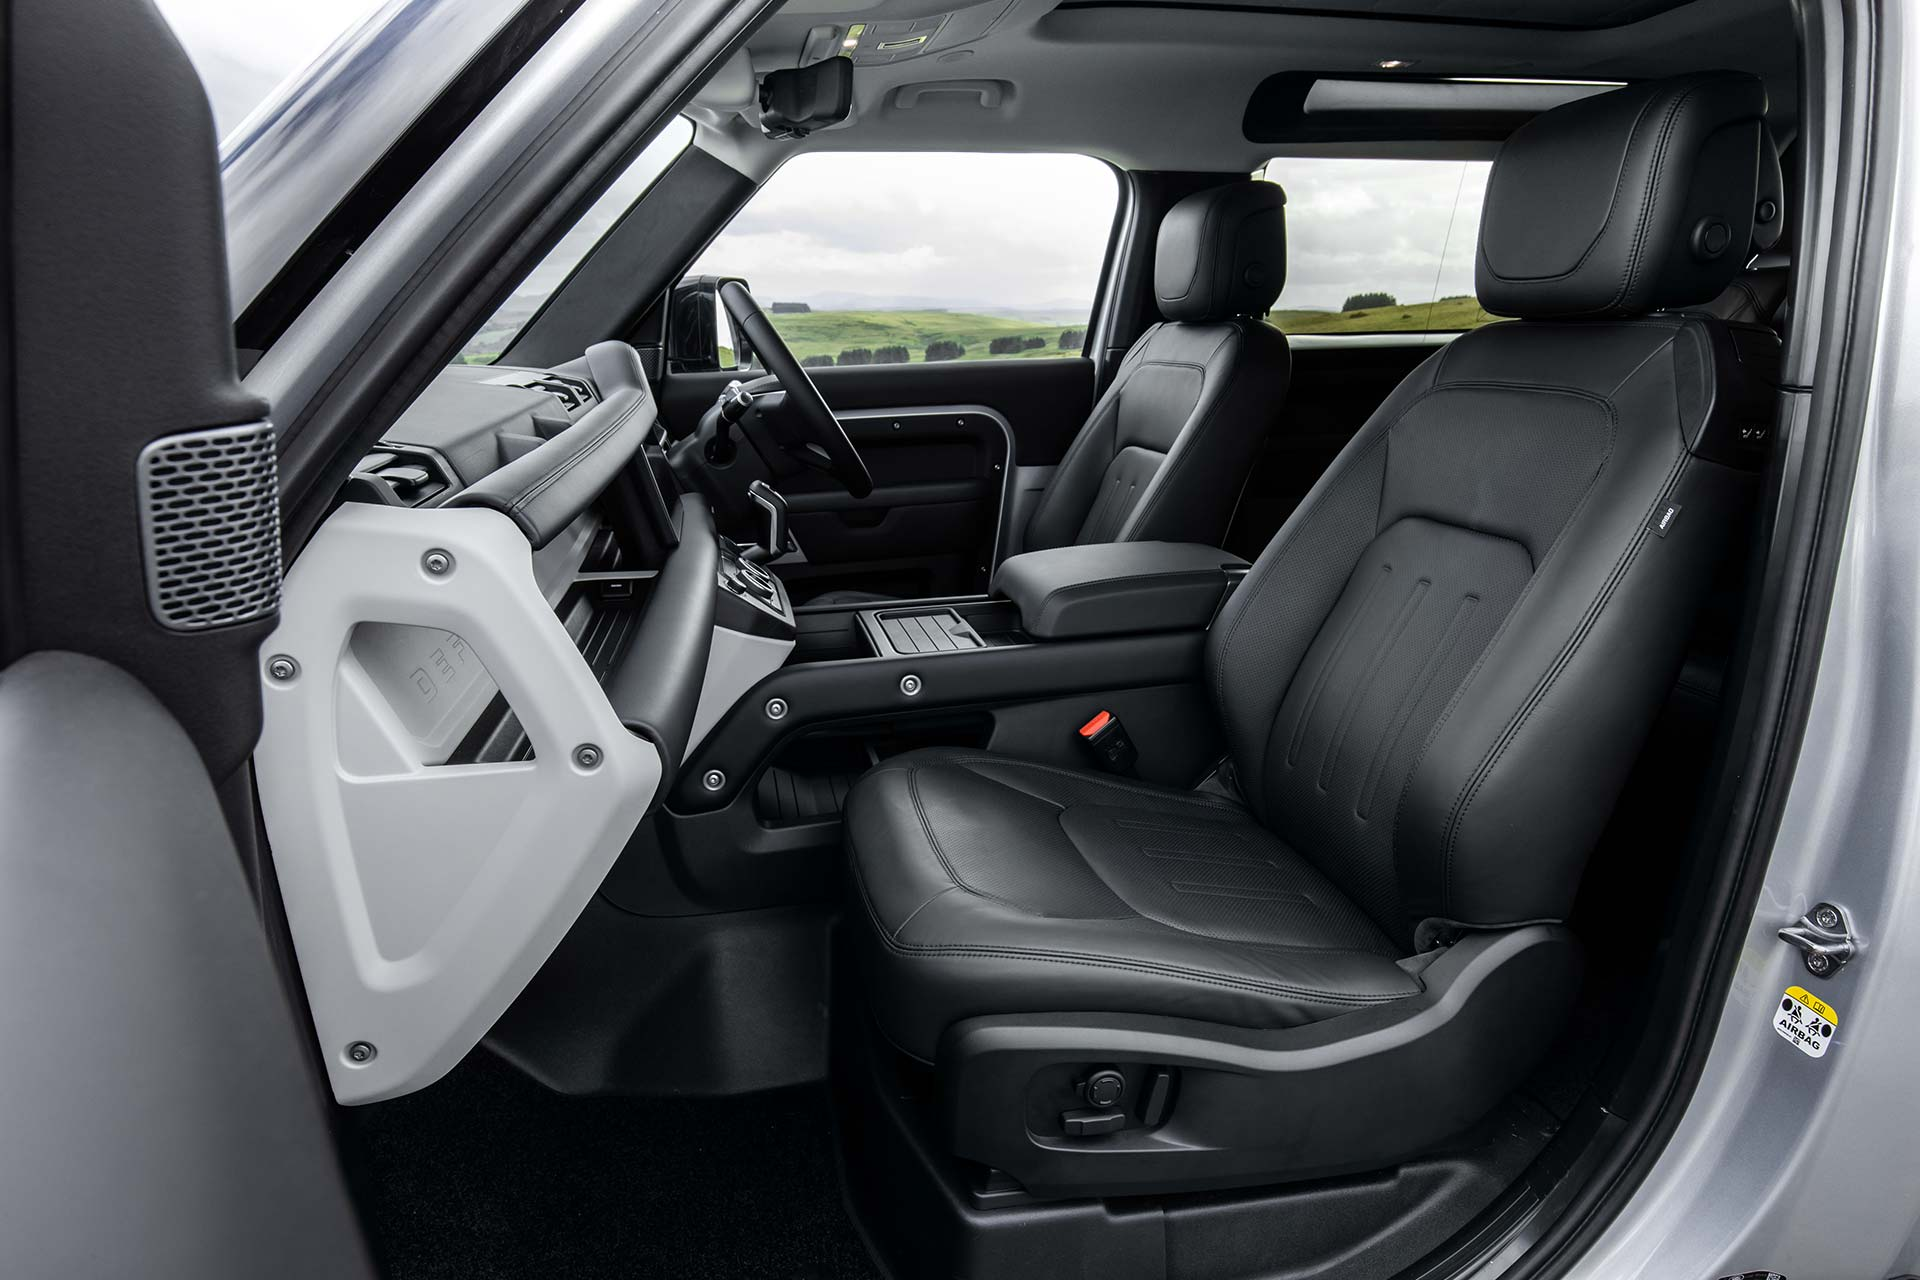 New Land Rover Defender Interior Front